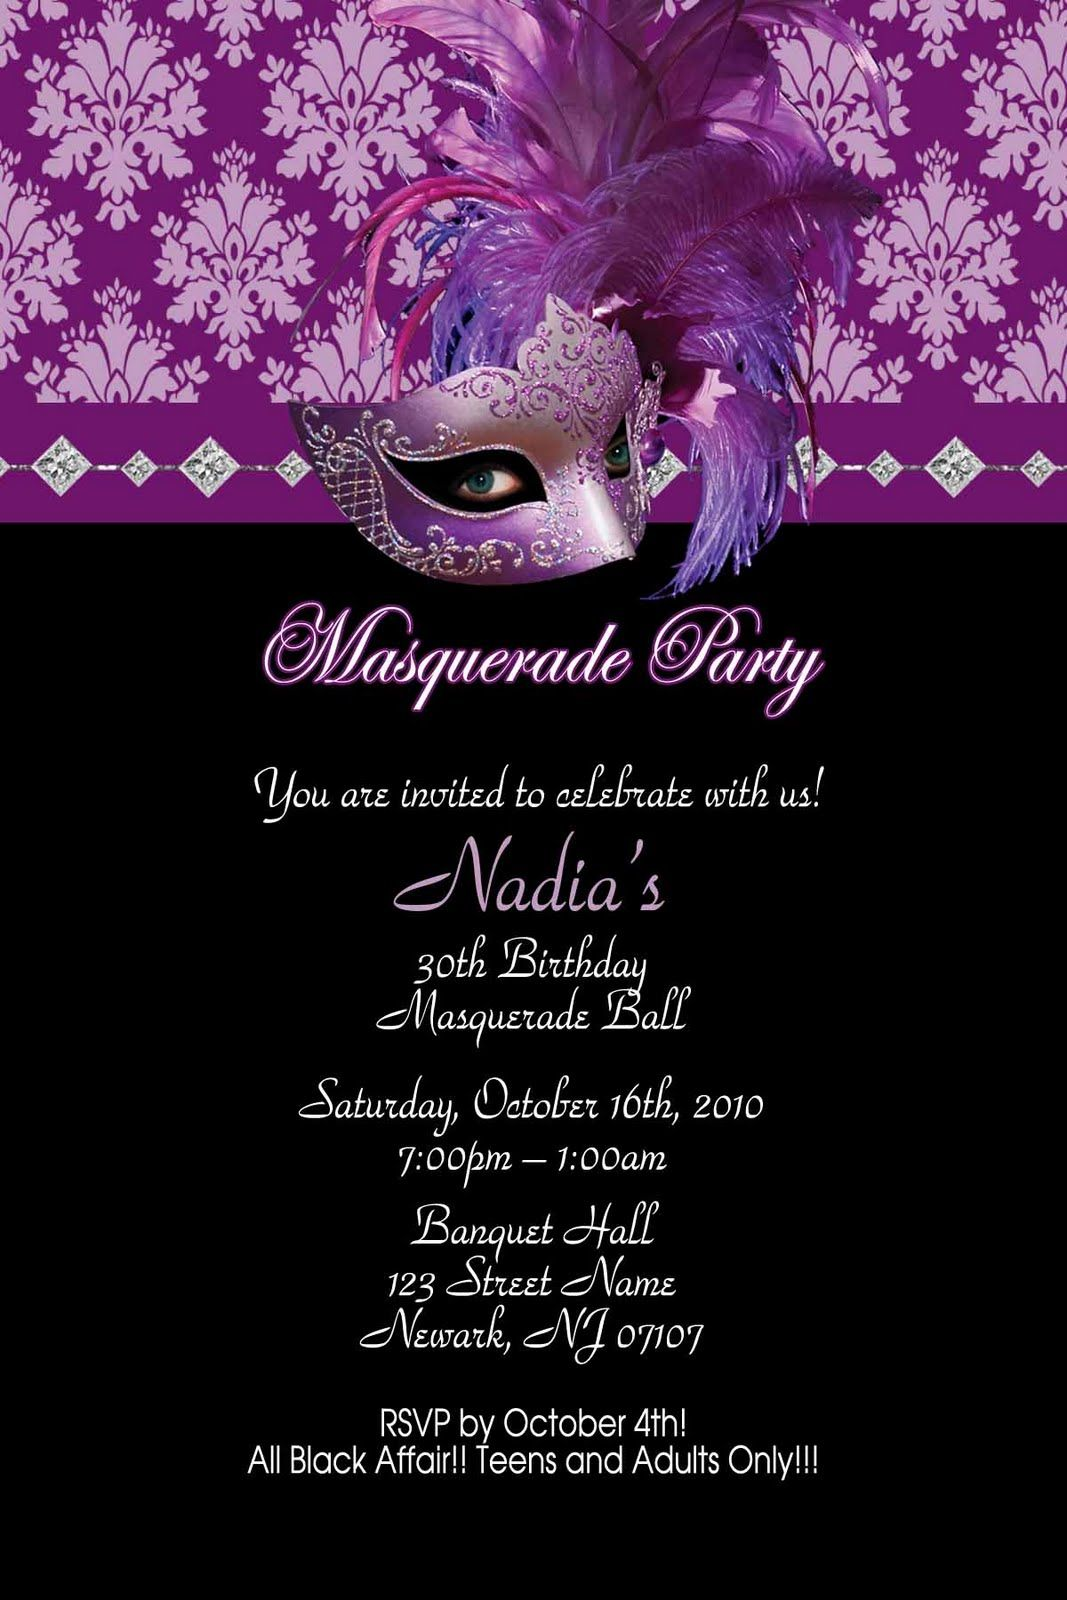 masquerade wedding invitations Custom Wedding Glass Toasting Glass Wine Glasses Toasting Flutes For Bride and Groom Table Settings Wedding Gift Decorations